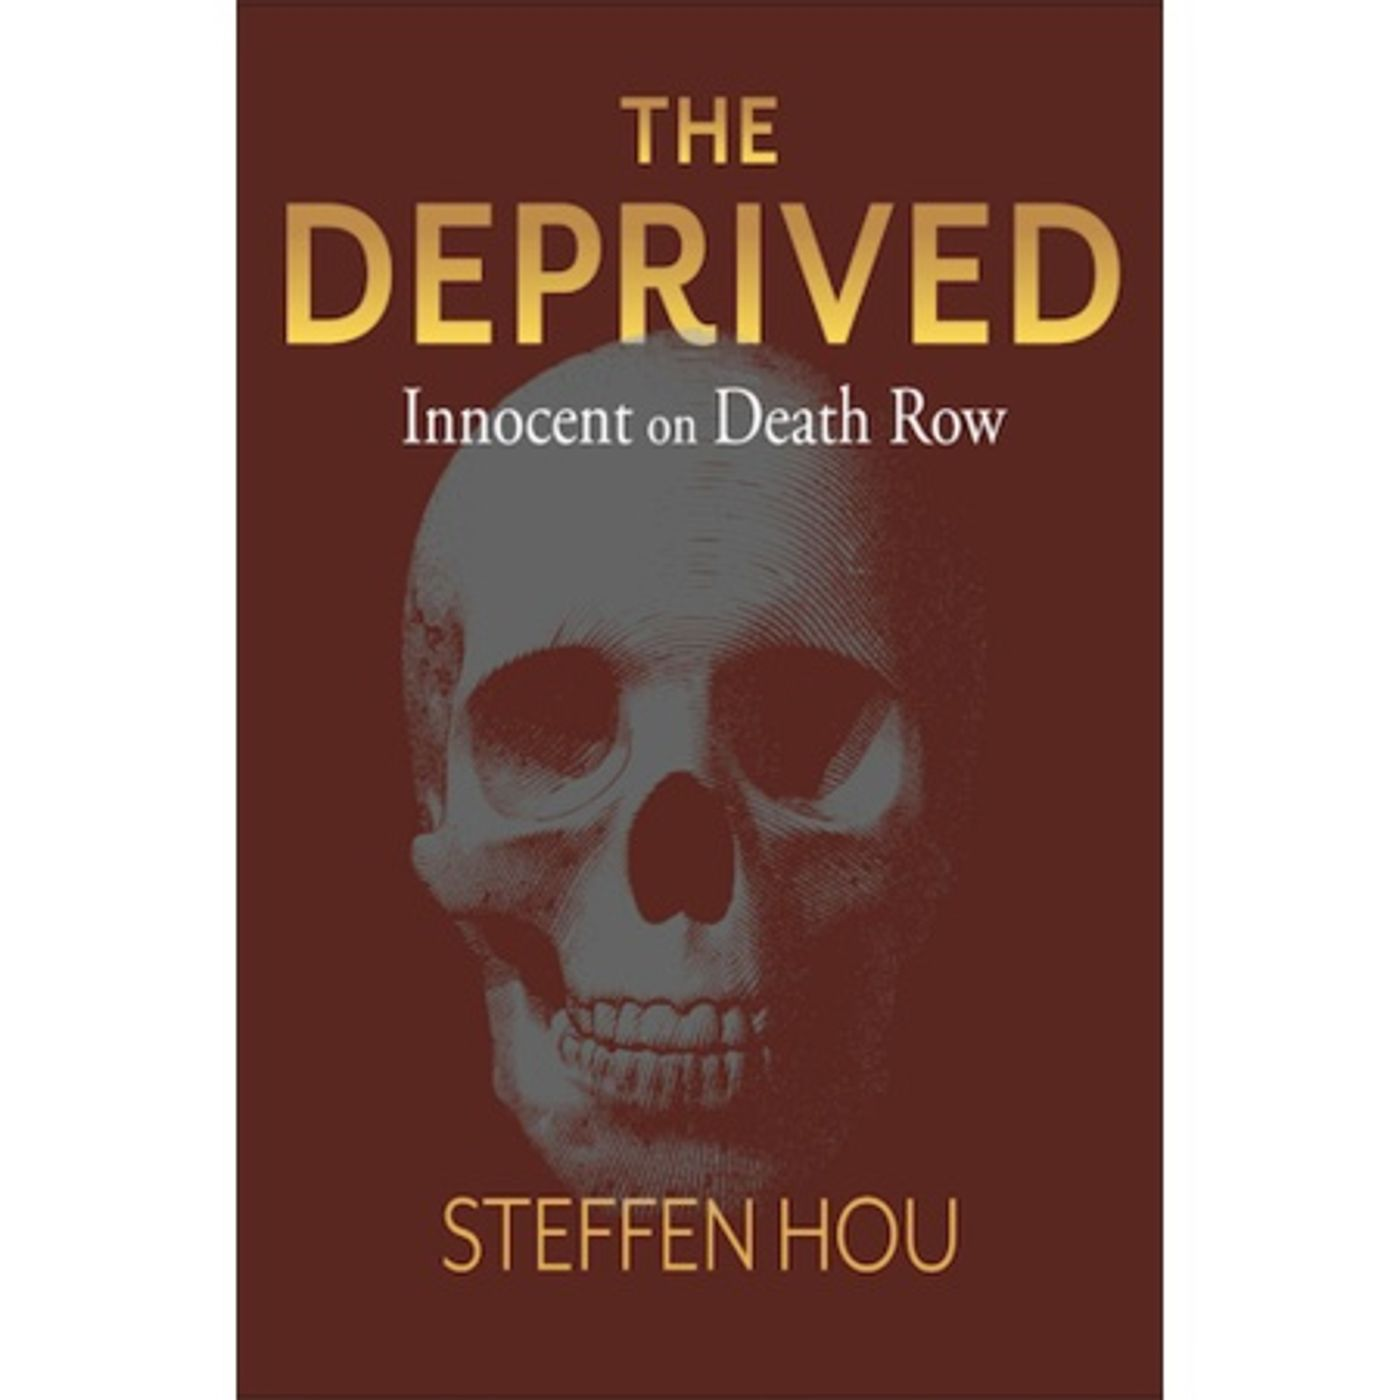 THE DEPRIVED-Steffen Hou